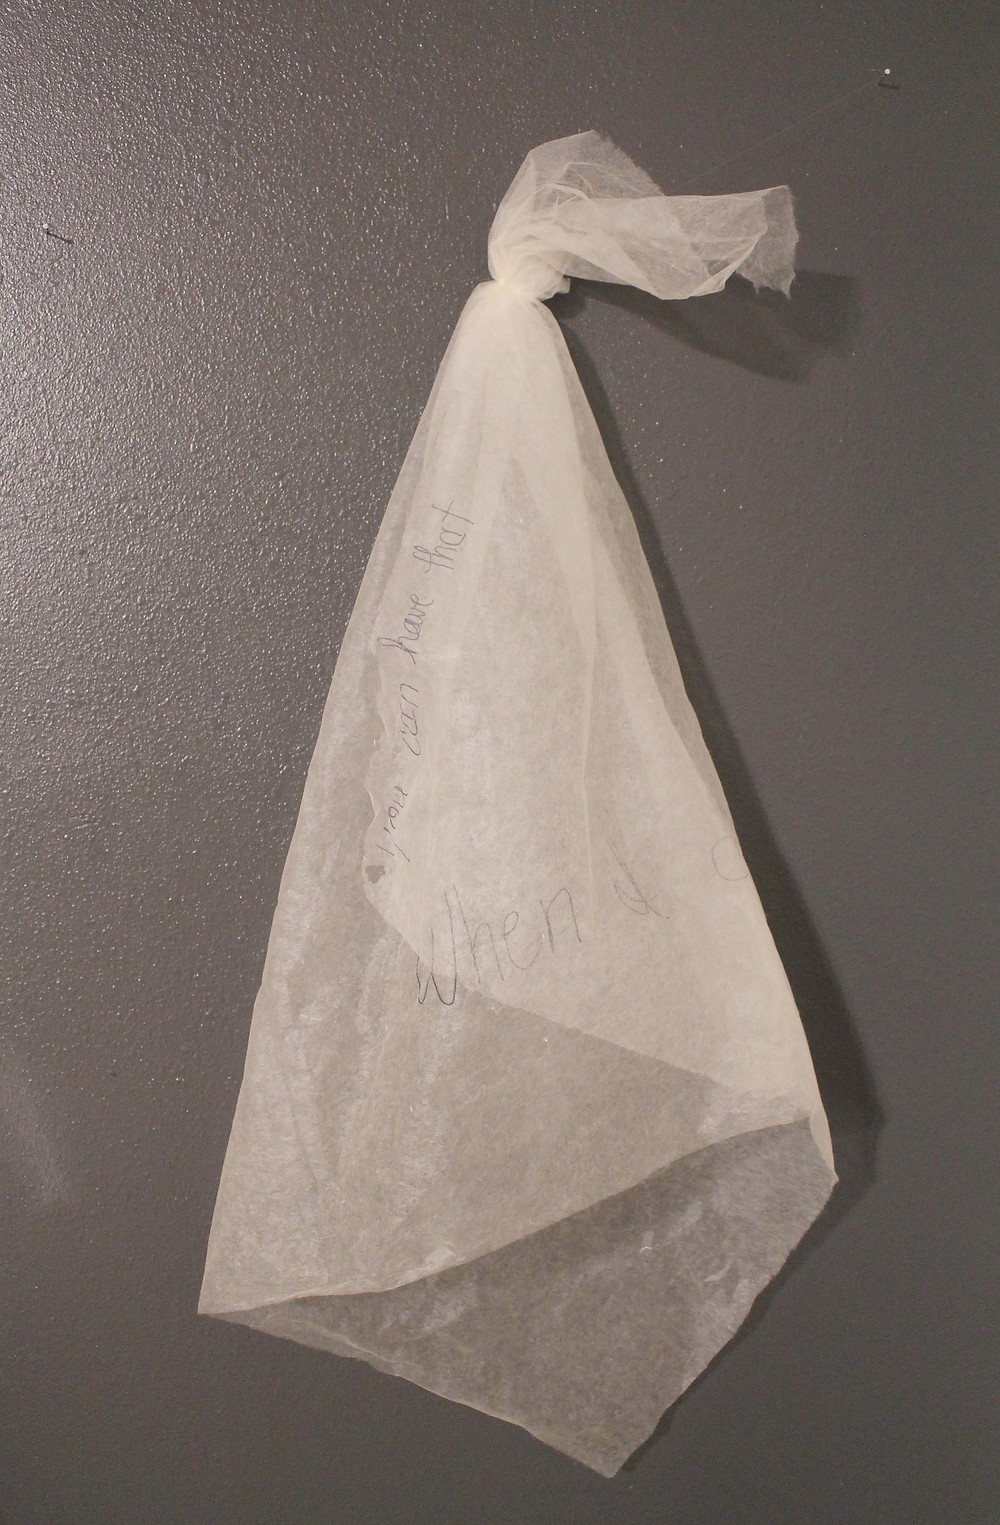 A transparent white handkerchief, knotted at the top and hanging from a gray wall.